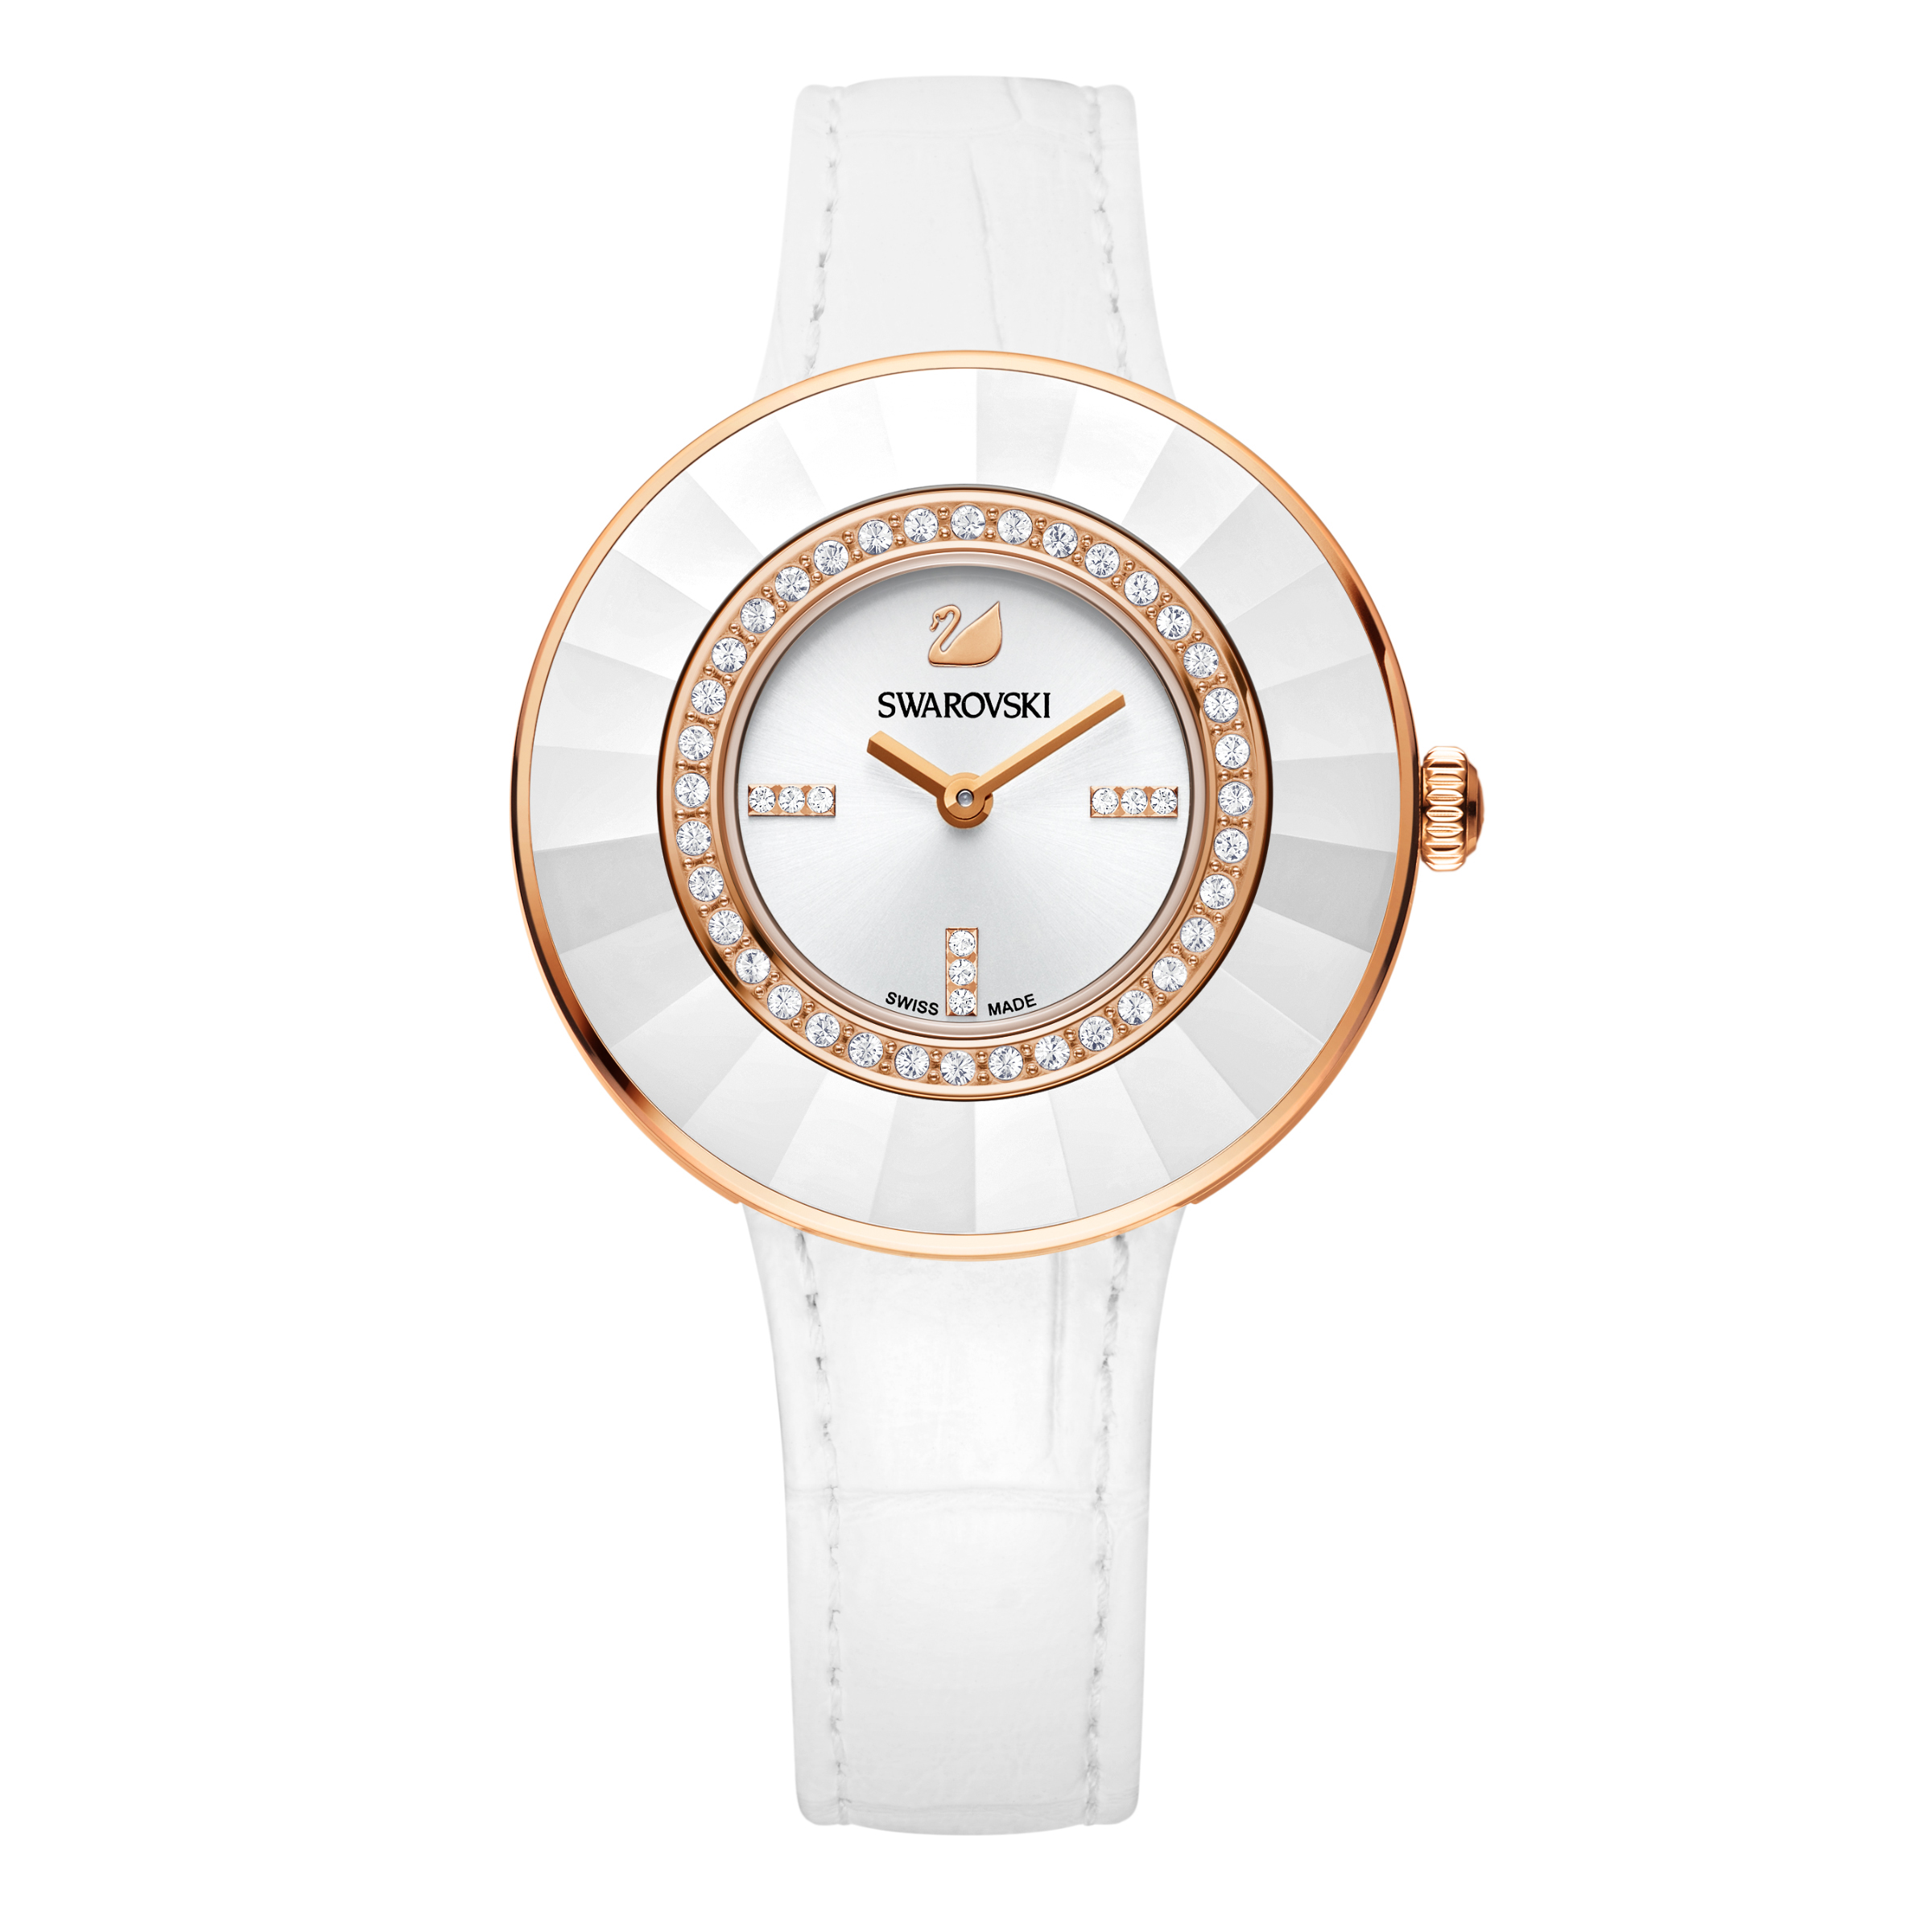 Swarovski Octea Dressy White & Rose Gold Watch | 5182265